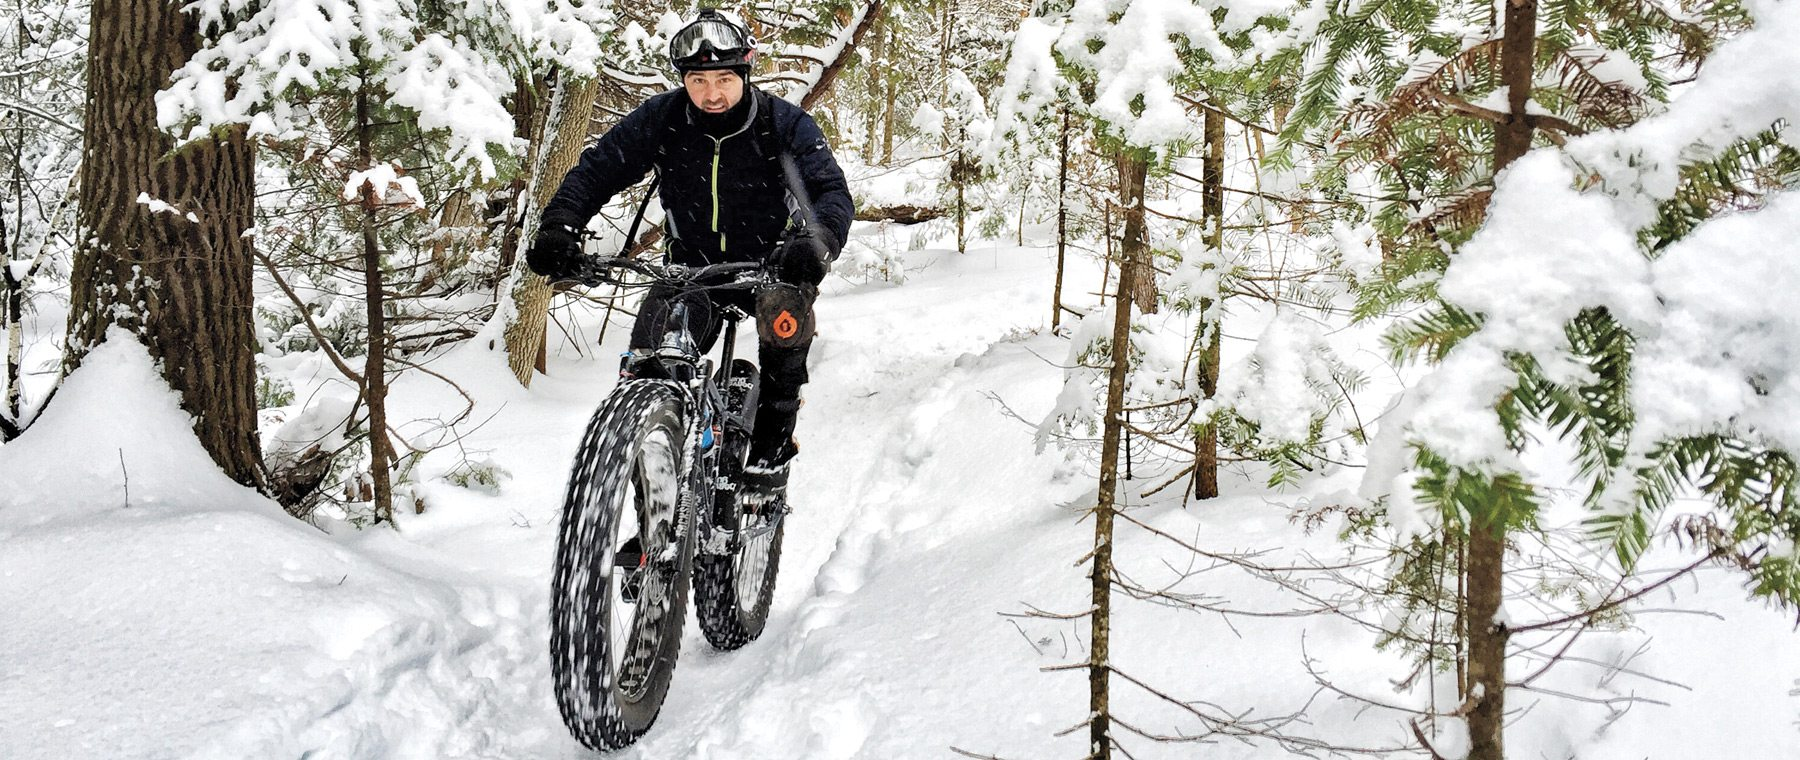 The missing piece in your outdoor-adventure regime? Fat biking